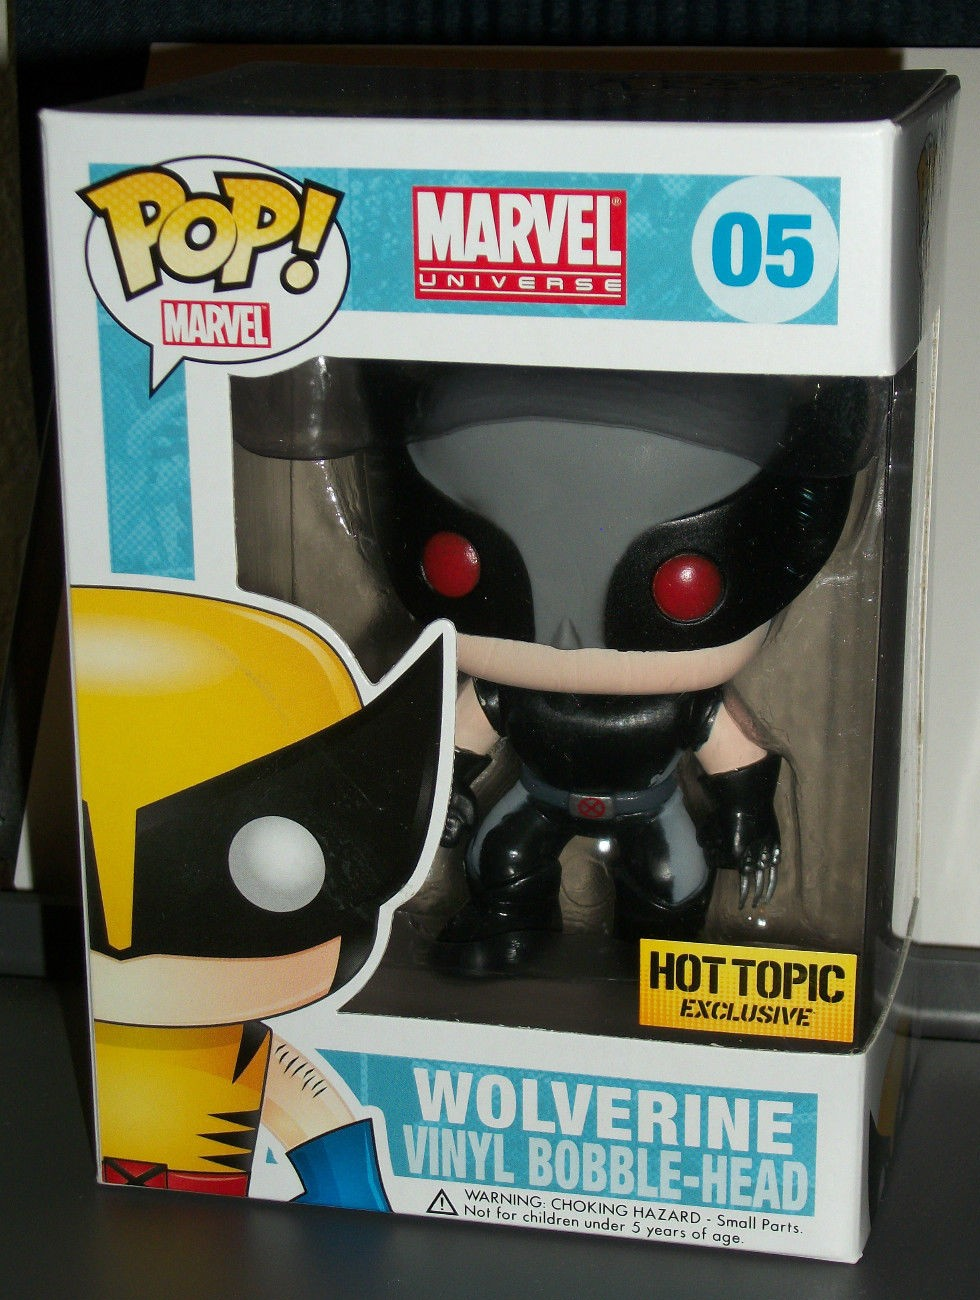 Toys From Hot Topic : Funko pop marvel wolverine force hot topic exclusive